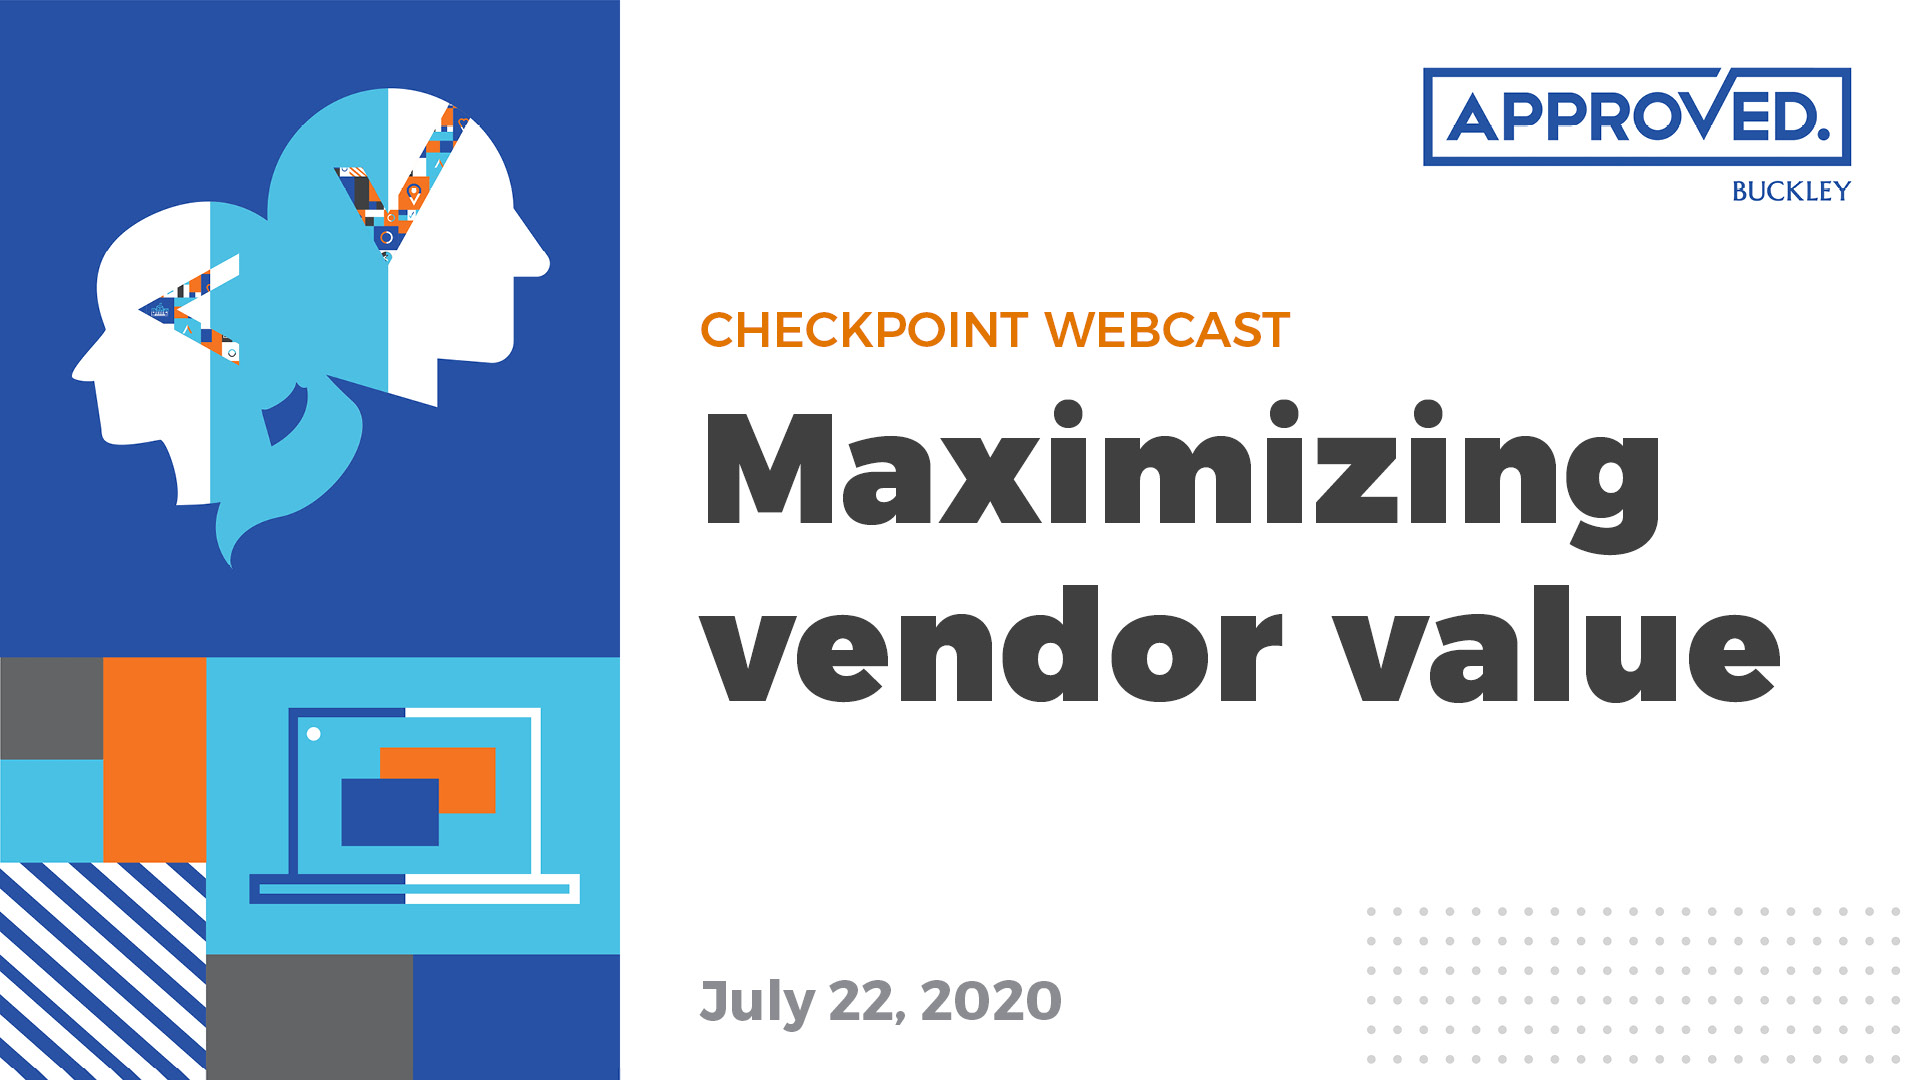 Maximizing Vendor Value | APPROVED Checkpoint Webcast